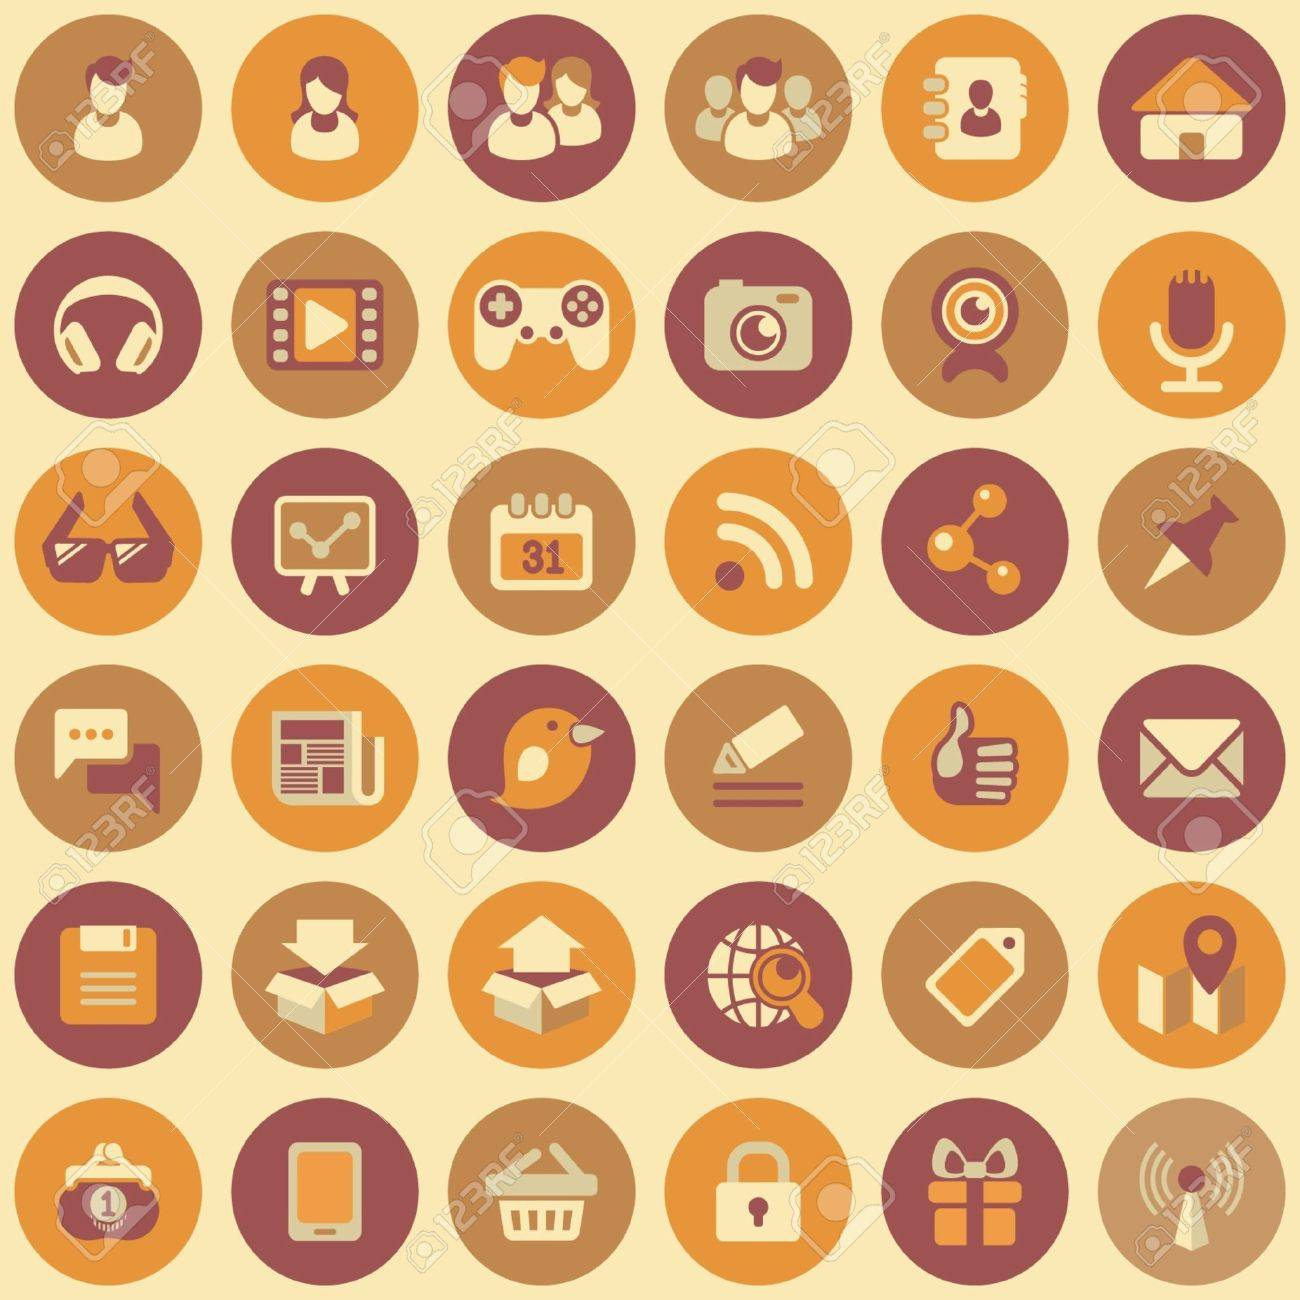 Set of 36 round flat web icons of social networking and multimedia  in retro colors Stock Vector - 21999530